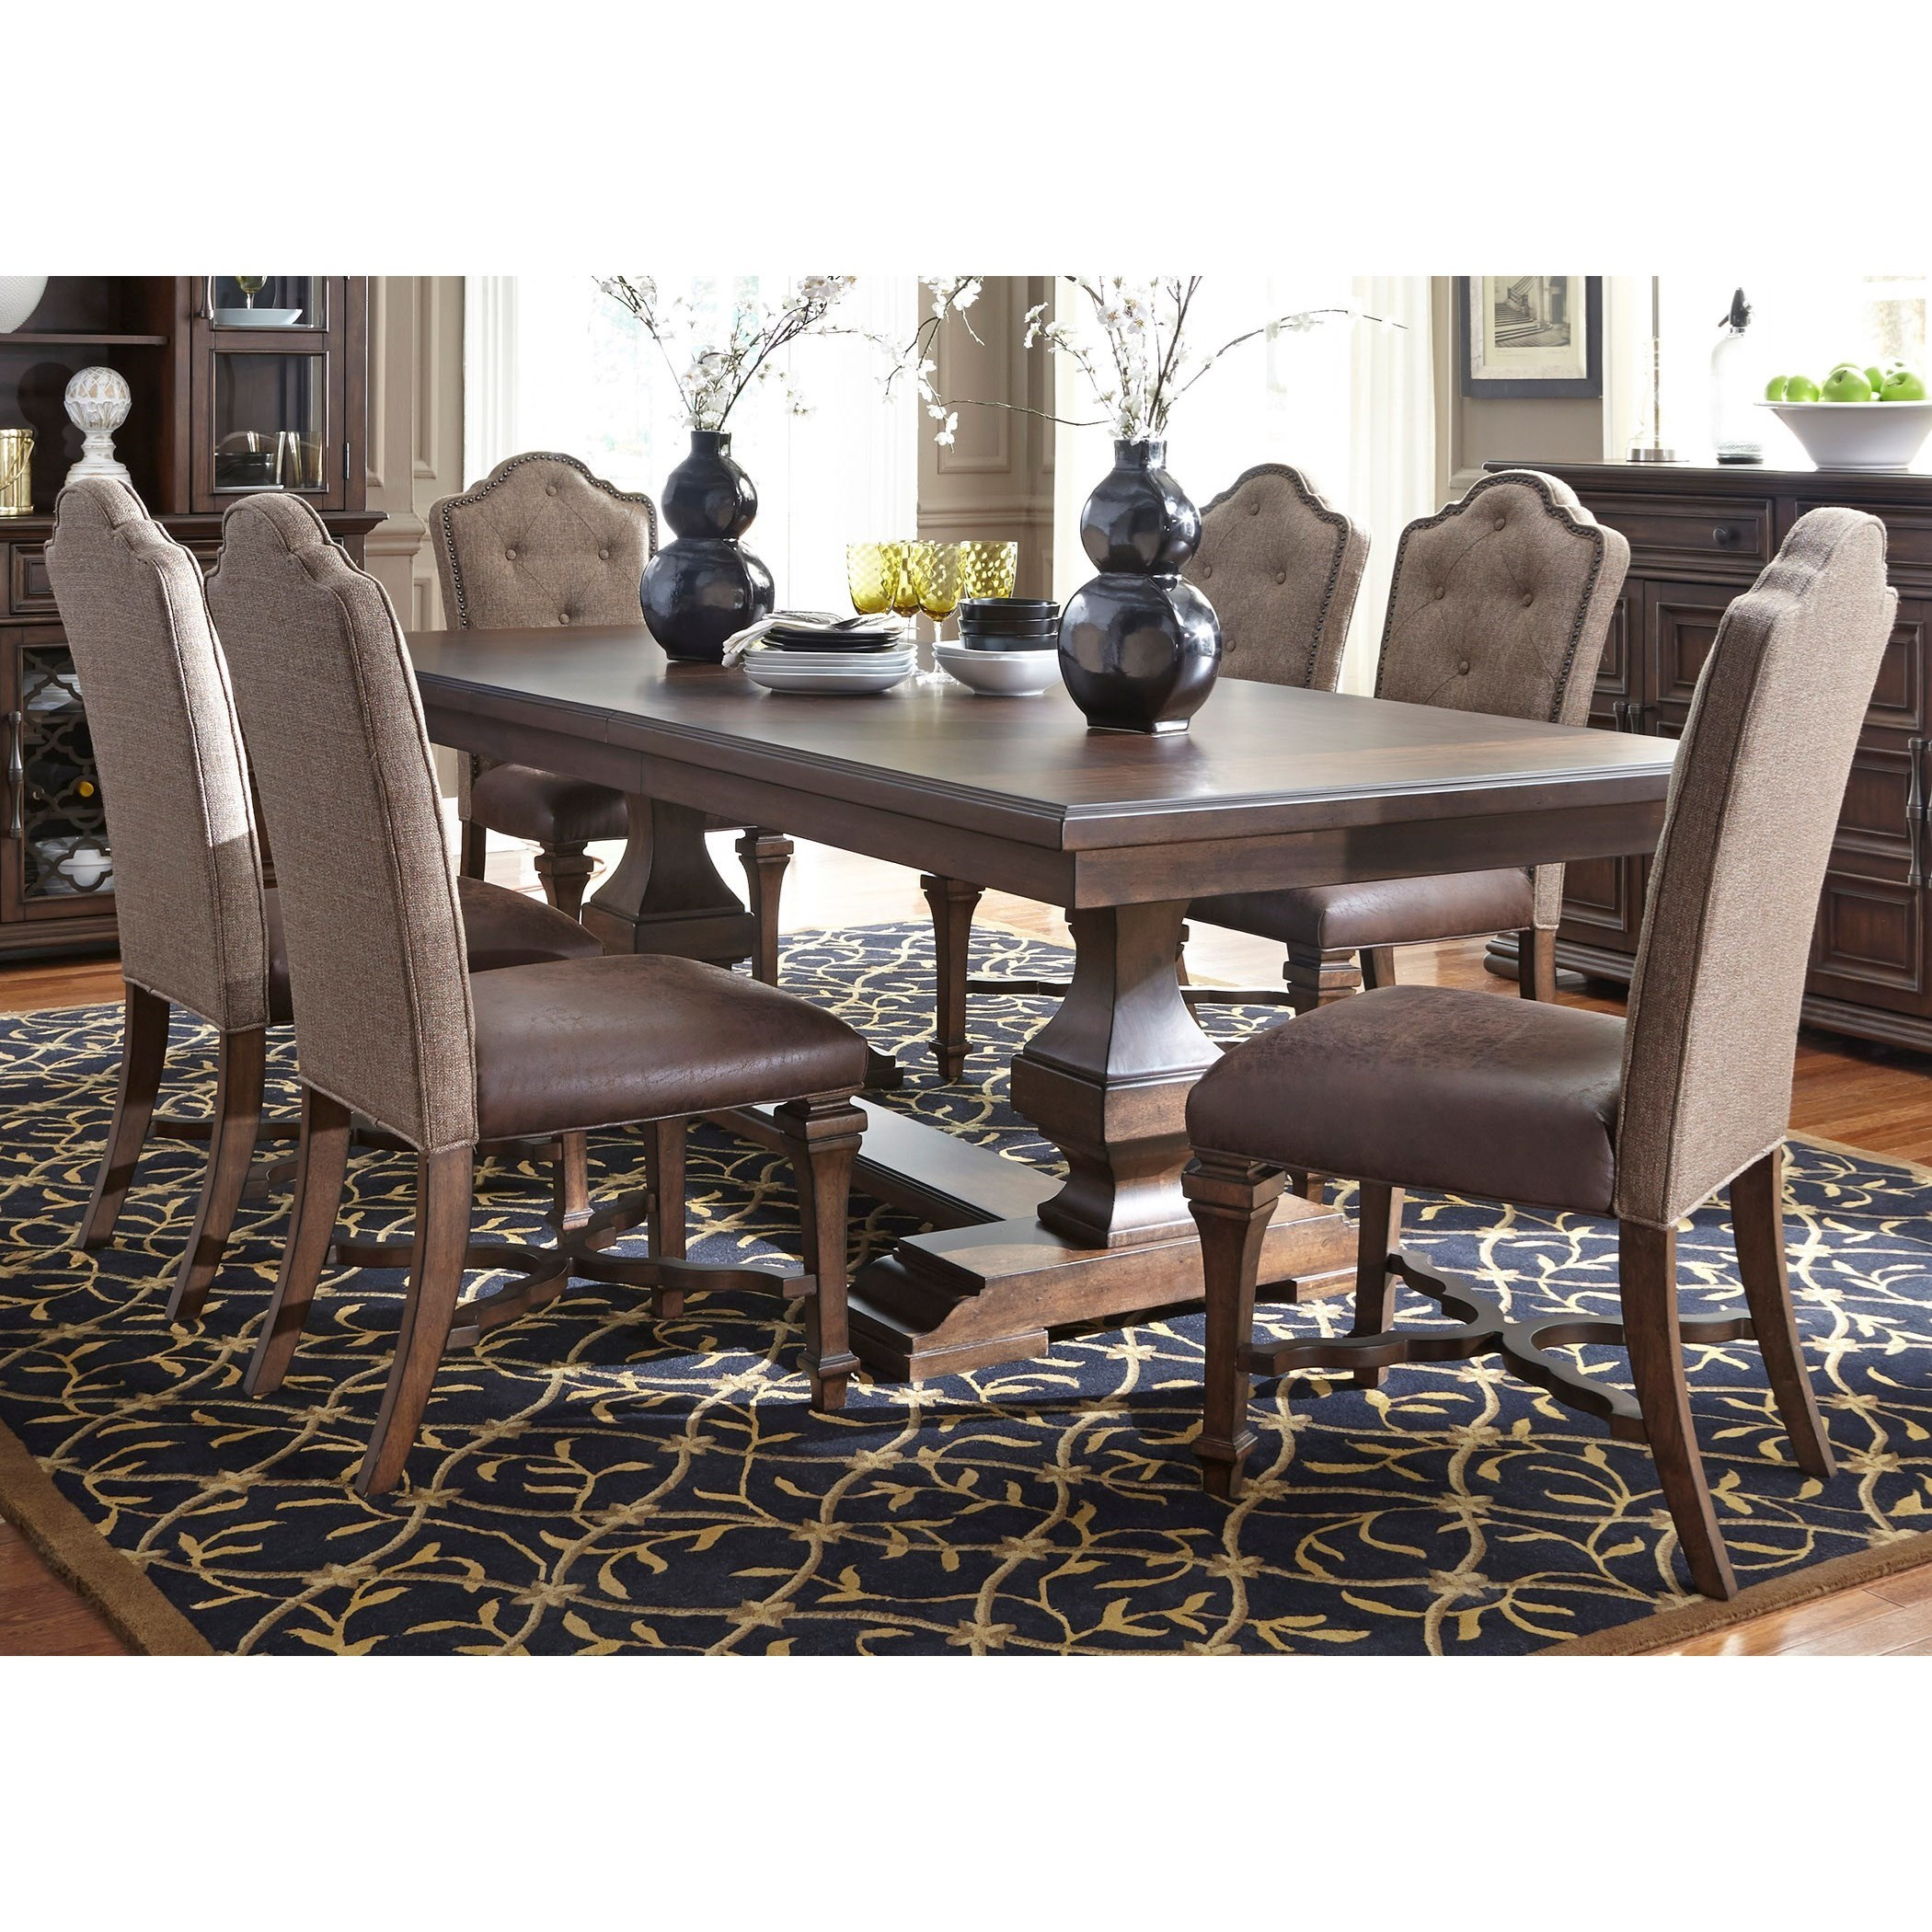 194 & Lucca Formal 7 Piece Two Pedestal Table and Upholstered Chair Set by Liberty Furniture at Wayside Furniture